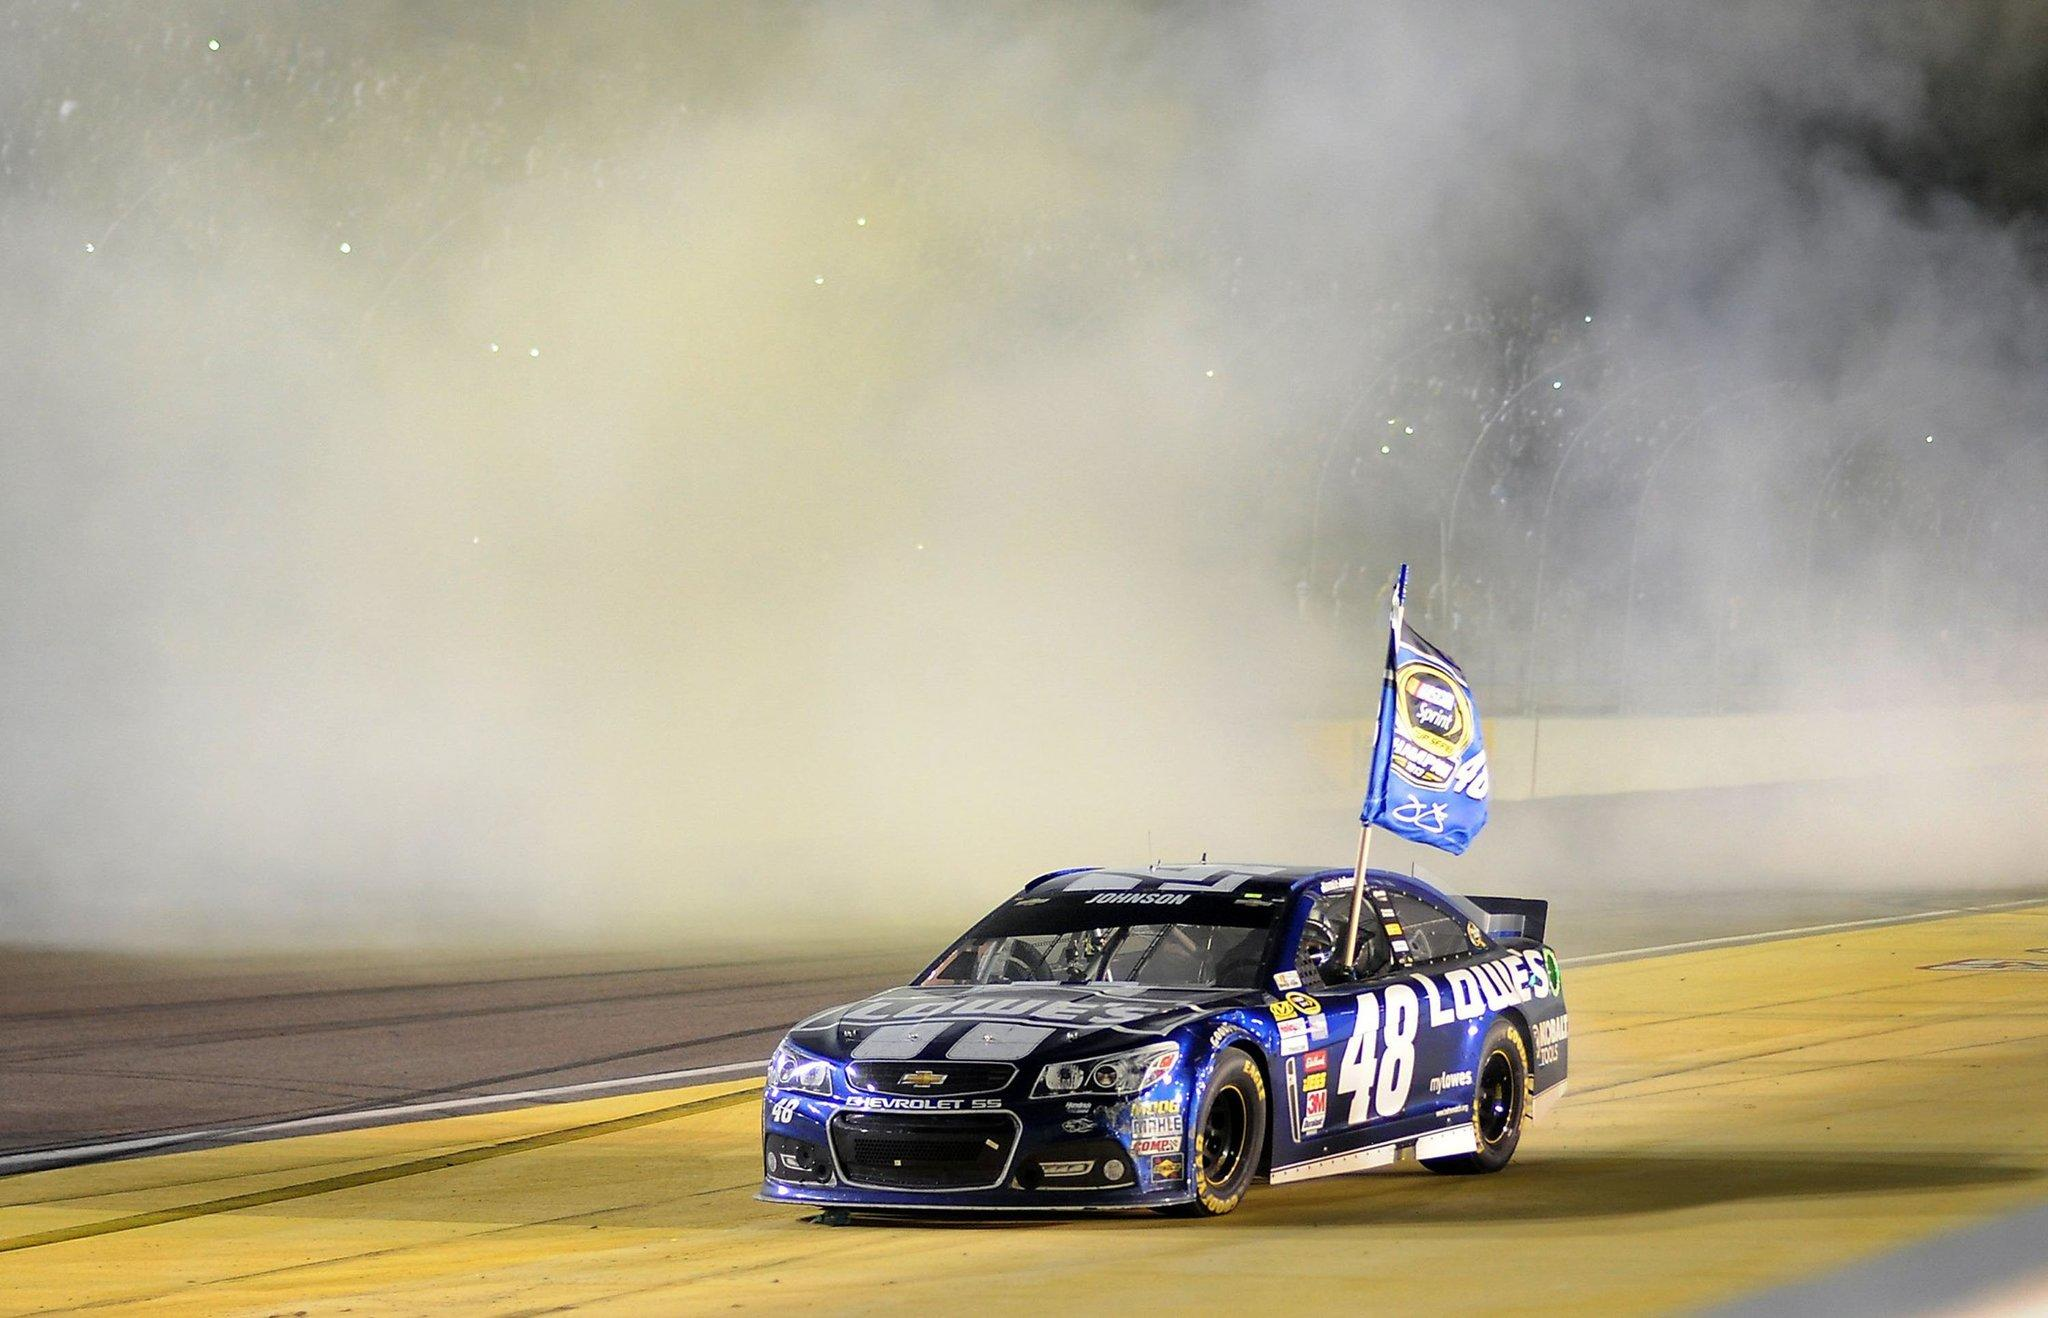 Jimmie Johnson wins the Sprint Cup Championship title after competing in the Ford EcoBoost 400 in Homestead, Fla.